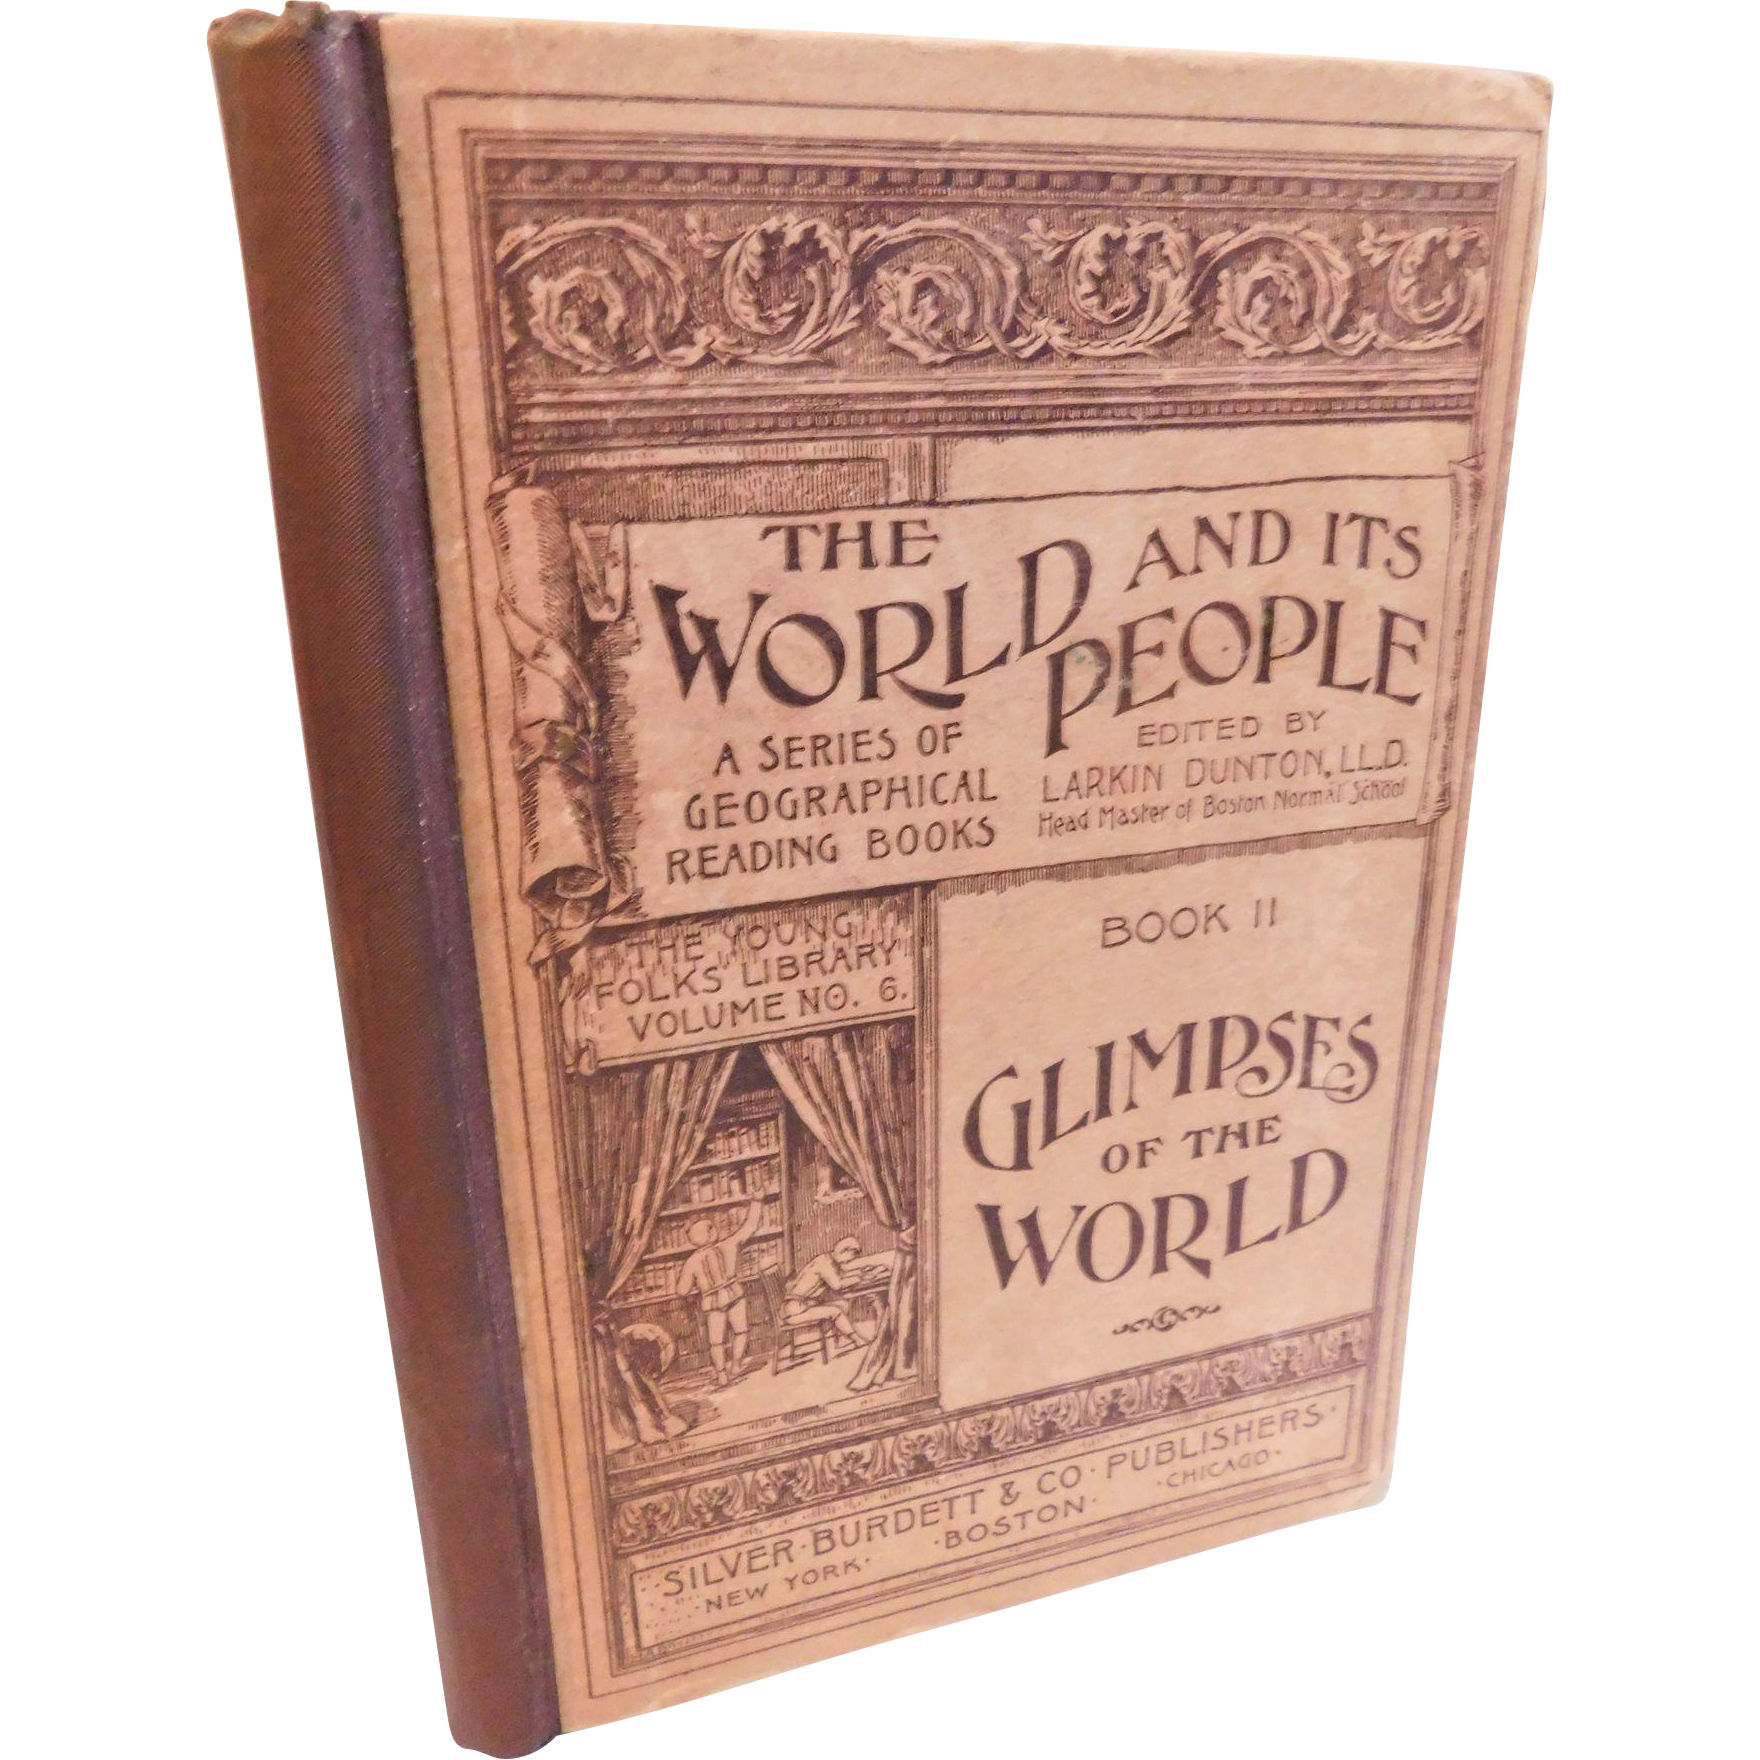 1893 The World & Its People Glimpses of the World Geography Reading School Lesson Book Larkin Dunton Victorian